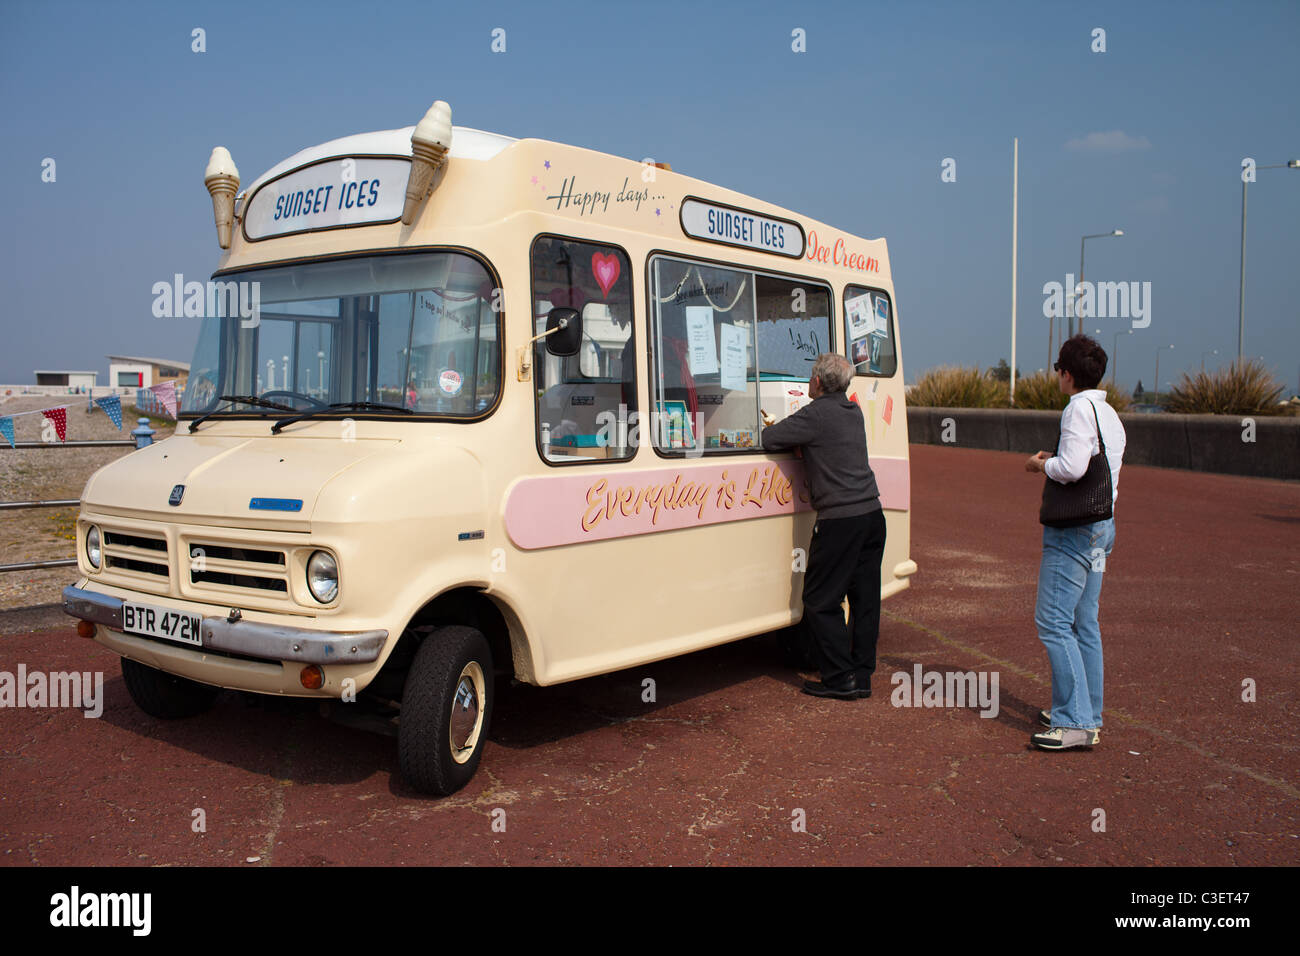 0172957dbd3a38 Old Lady Ice Cream Stock Photos   Old Lady Ice Cream Stock Images ...